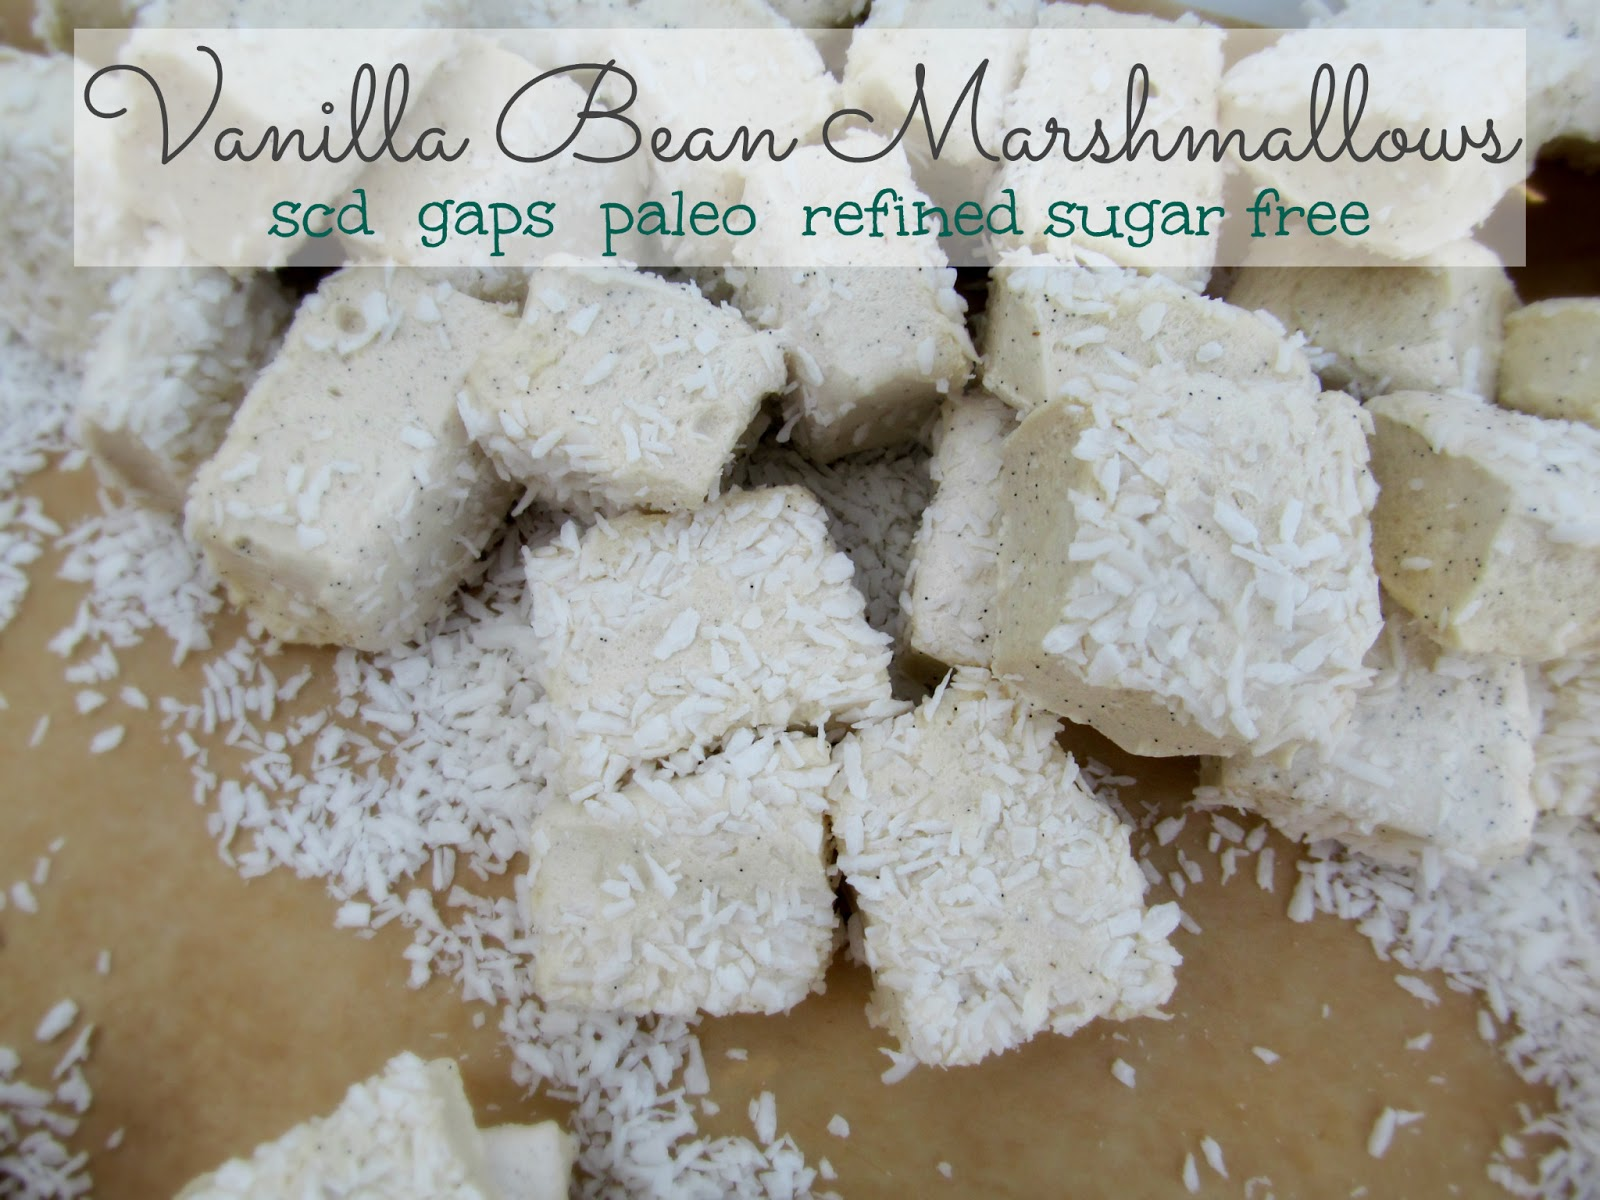 The post for Vanilla Bean Marshmallows has been moved to my new site ...